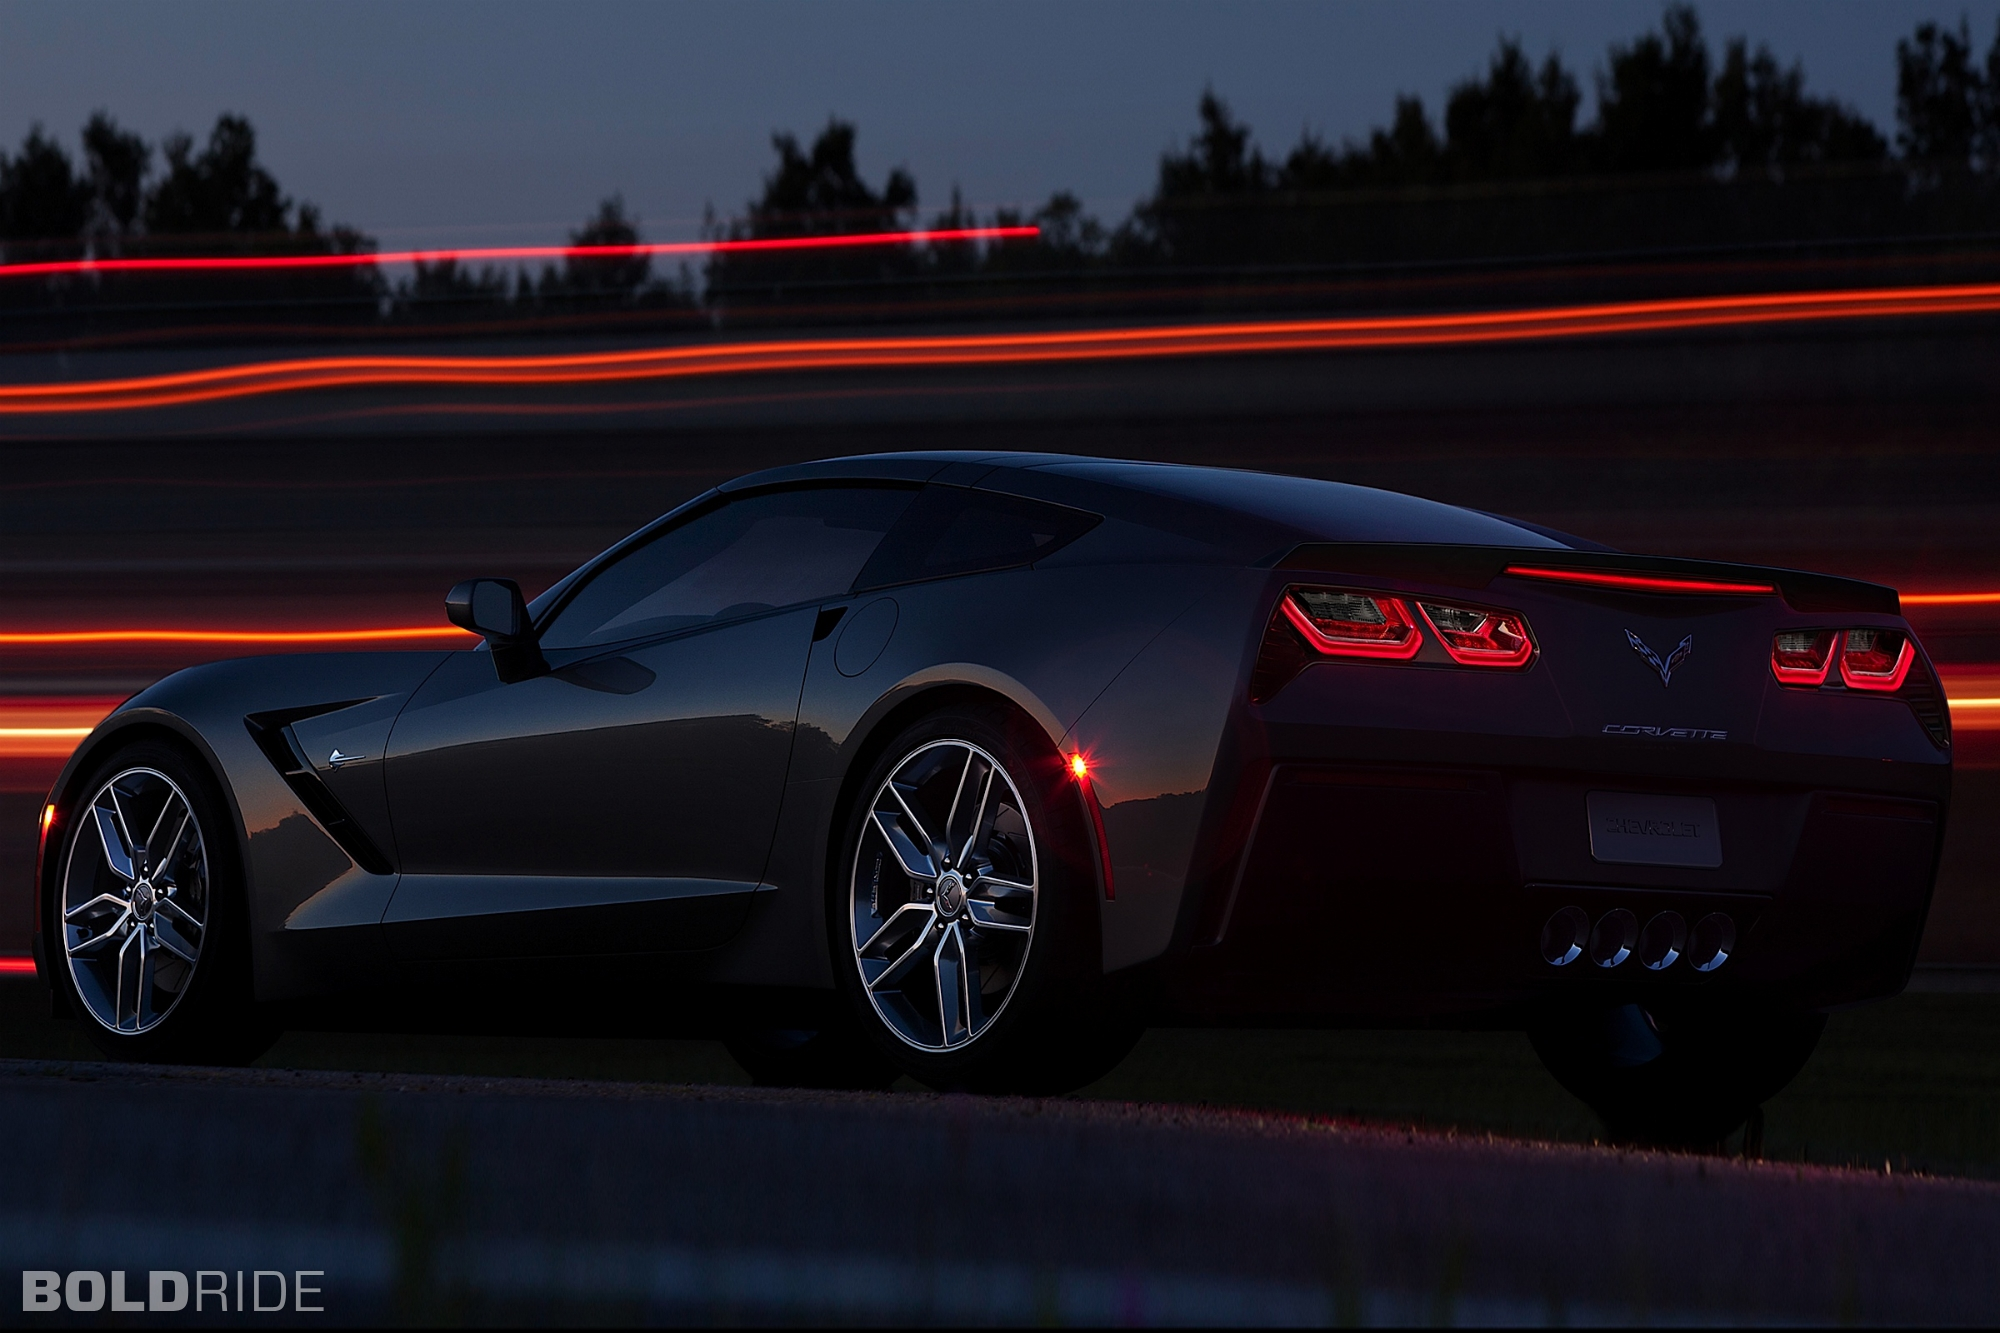 Corvette Stingray Wallpaper Car Wallpapers 2000x1333